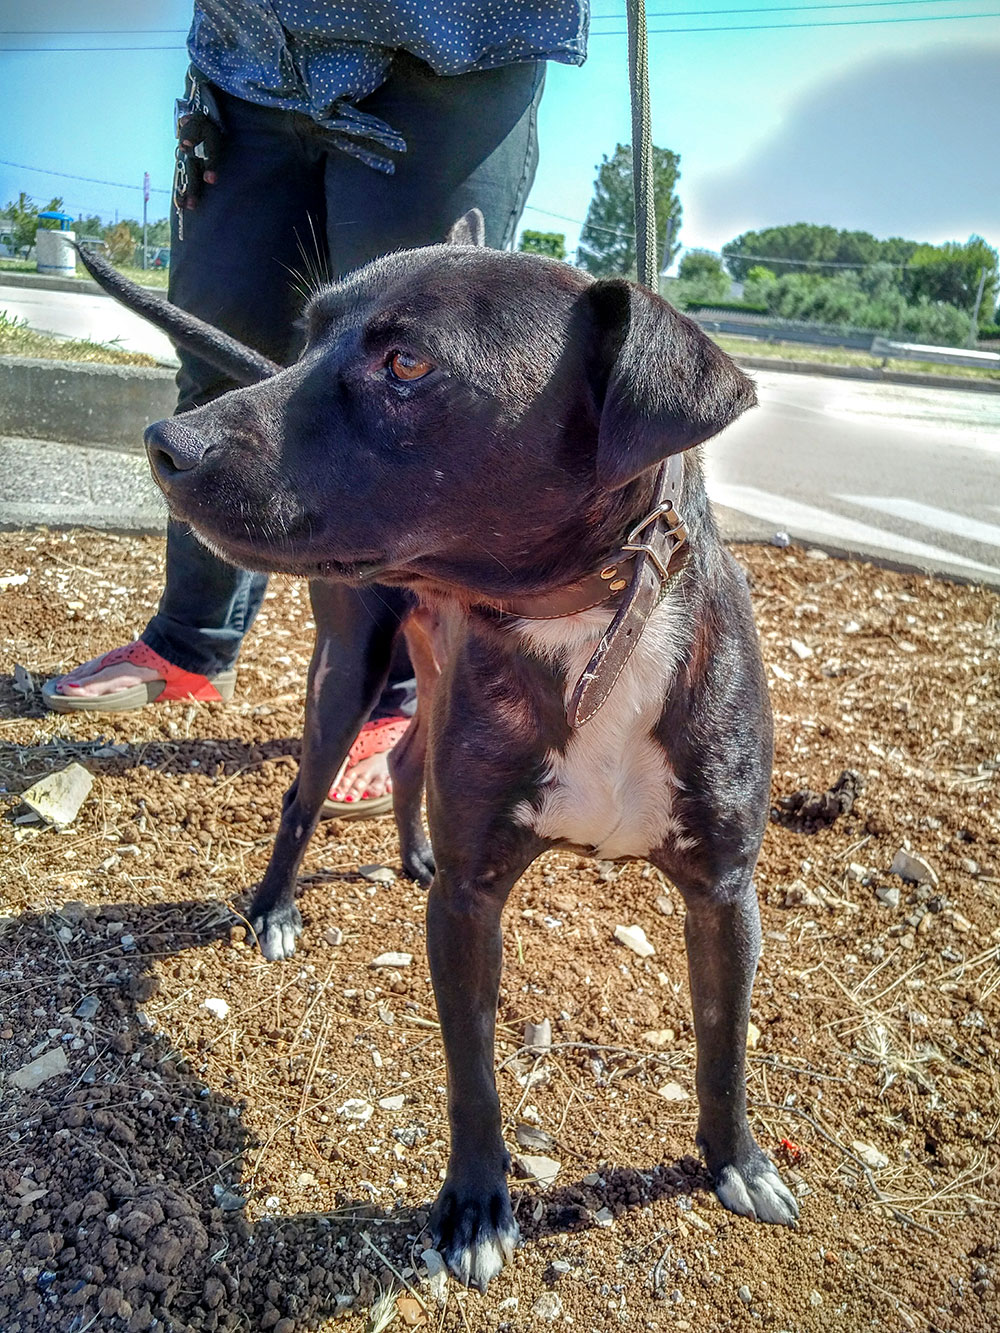 Handsome Blackie has been adopted by Natalya and Wayne and is on his way to them in Edinburgh. They adopted another dog from Lesvos last year, who also travelled with us.